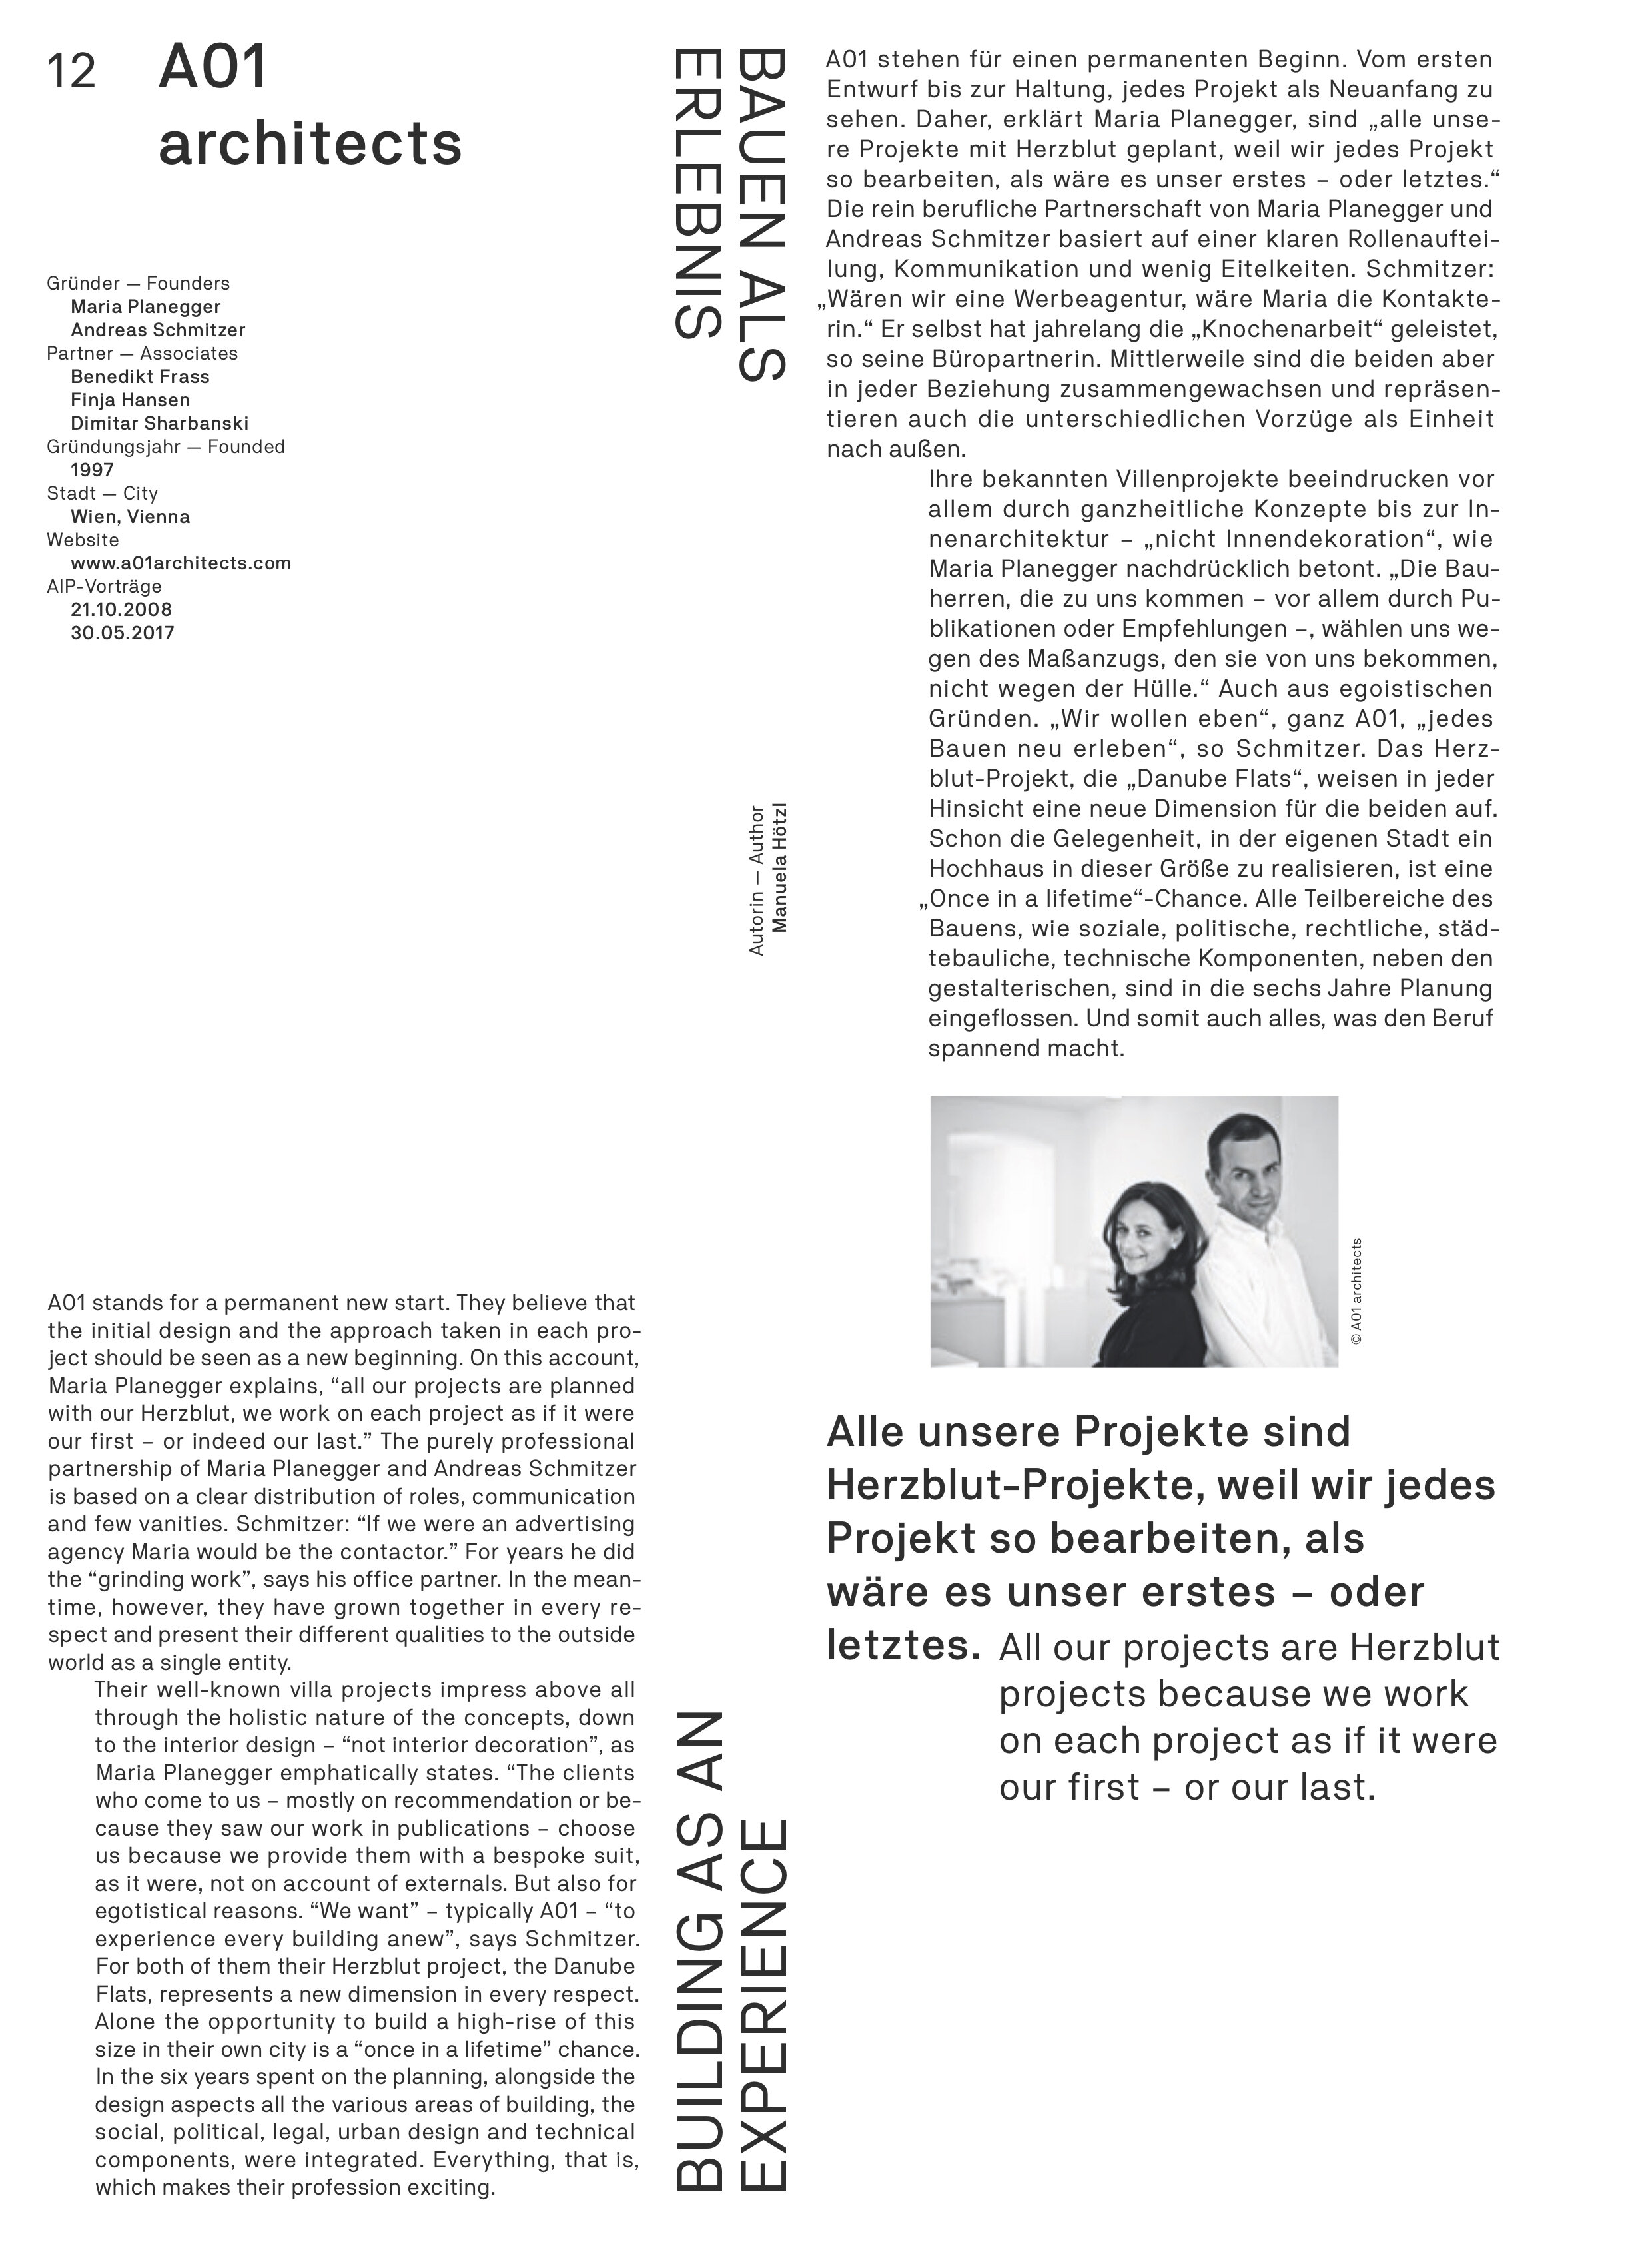 The 'Herzblut' of A01architects - Book published by architecture in progress